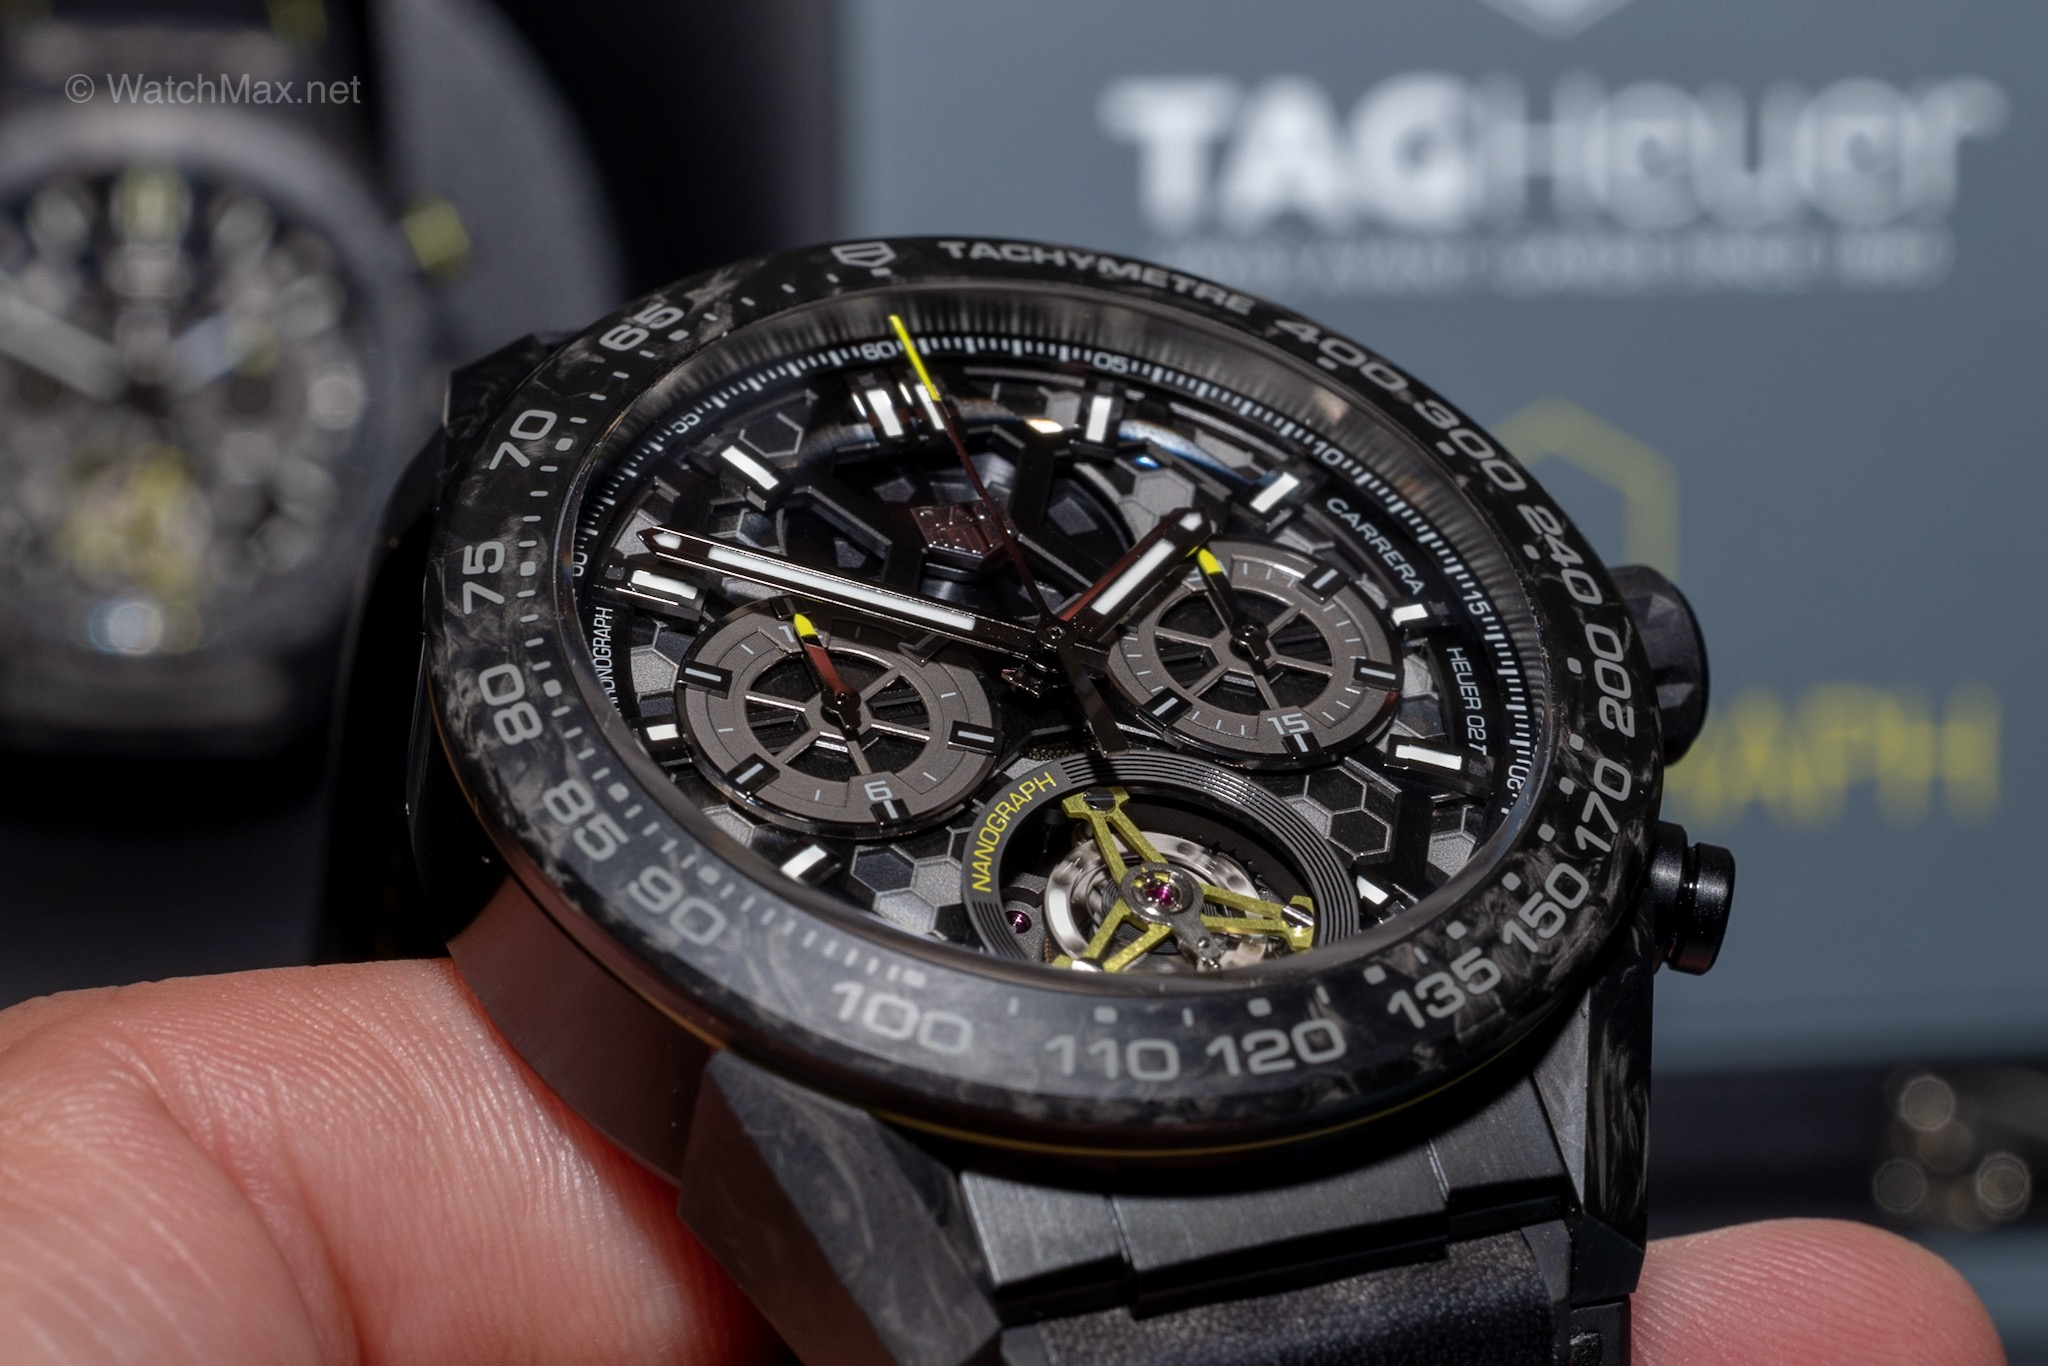 TAG Heuer Nanograph Tourbillon first look @ Geneva Days 2019 - At Geneva Days during SIHH, TAG Heuer showed me the new version of their Carrera Tourbillon watch sporting bold new look with a brand new hairspring made of carbon and nanotubes. Read more